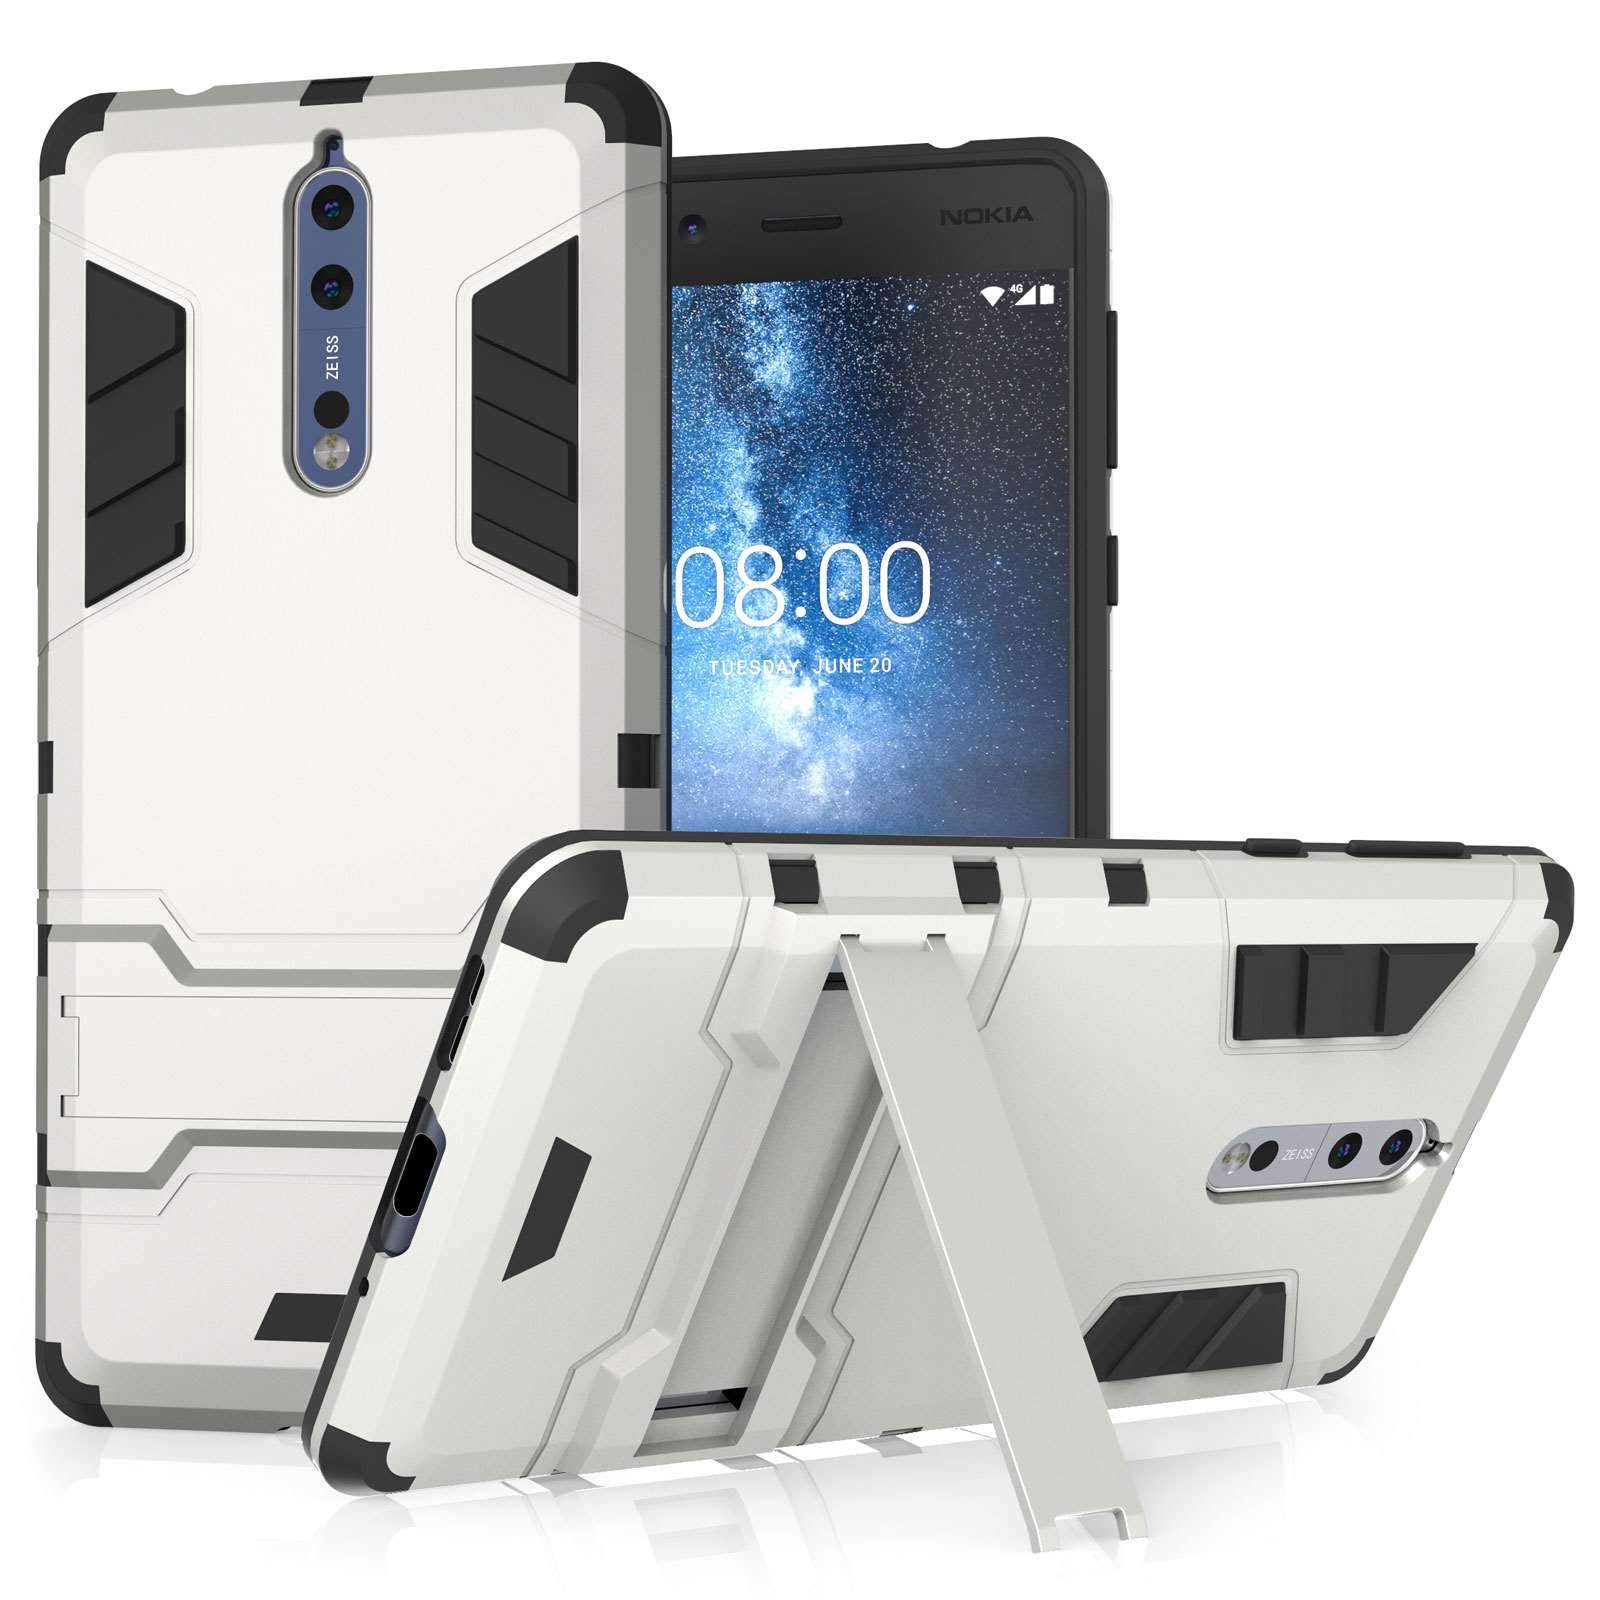 reputable site 949ee 24238 Nokia 8 Shockproof Armour Case - Silver